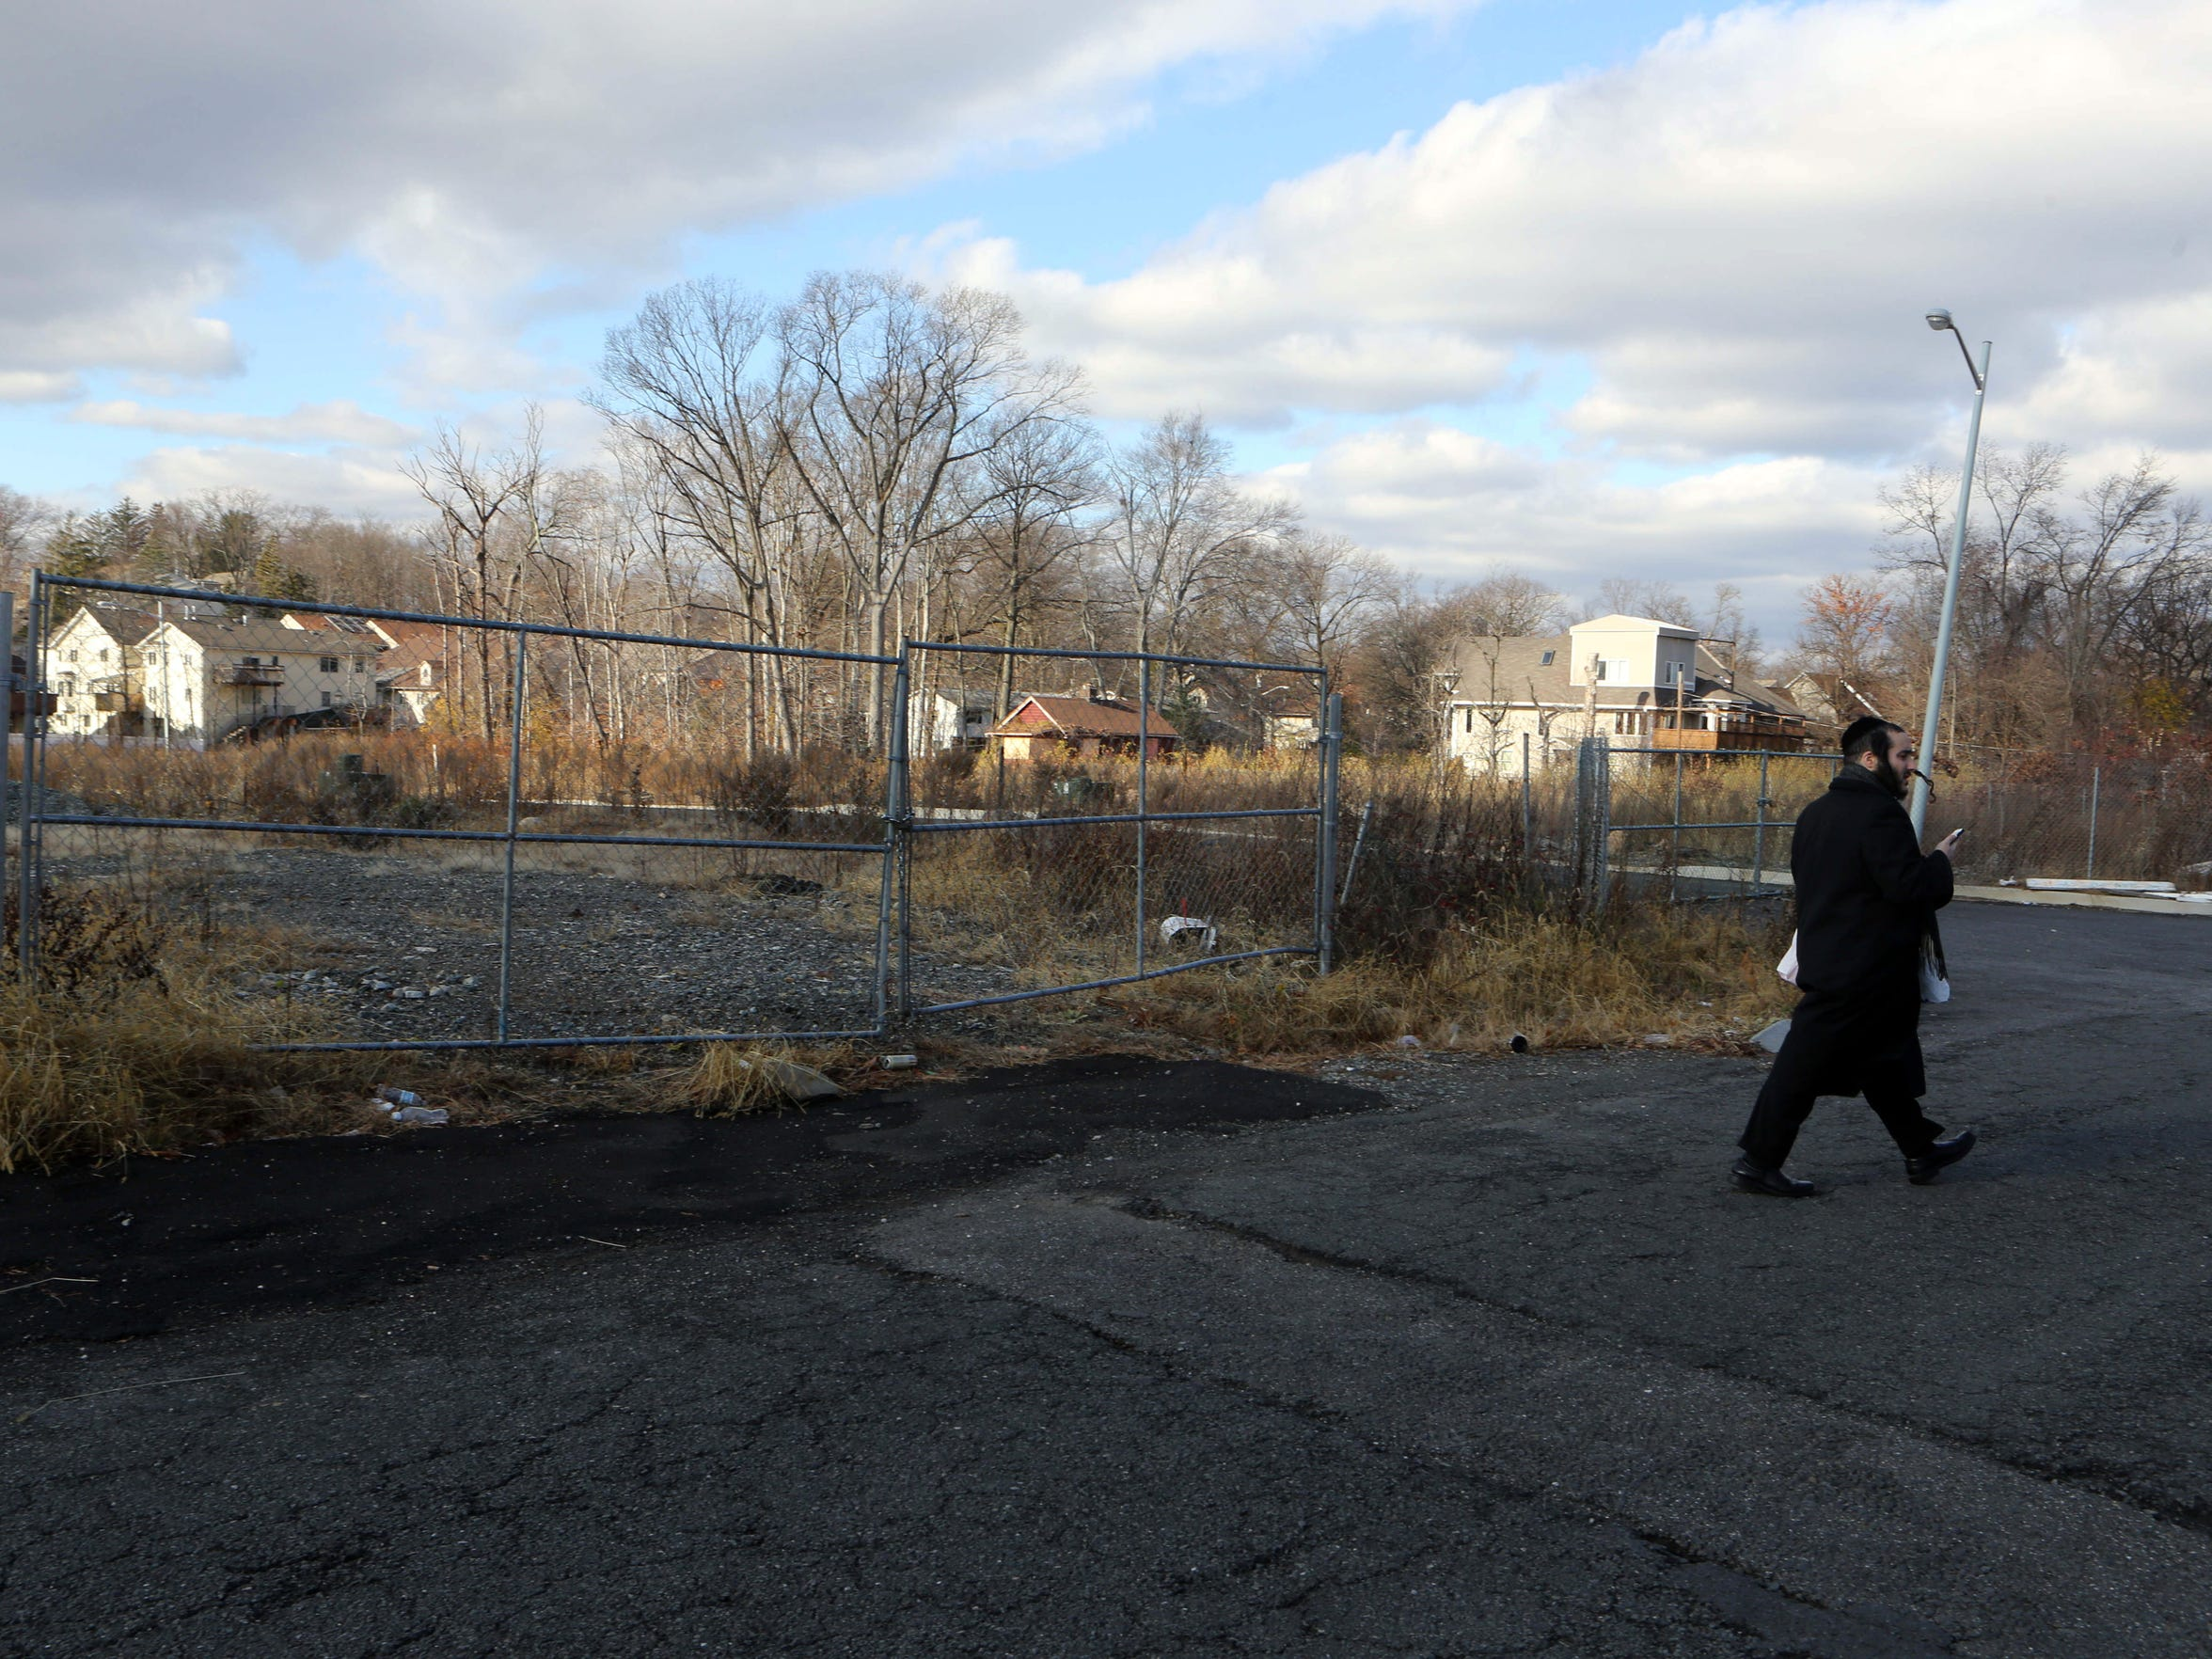 Twelve housing units are planned for a vacant lot on